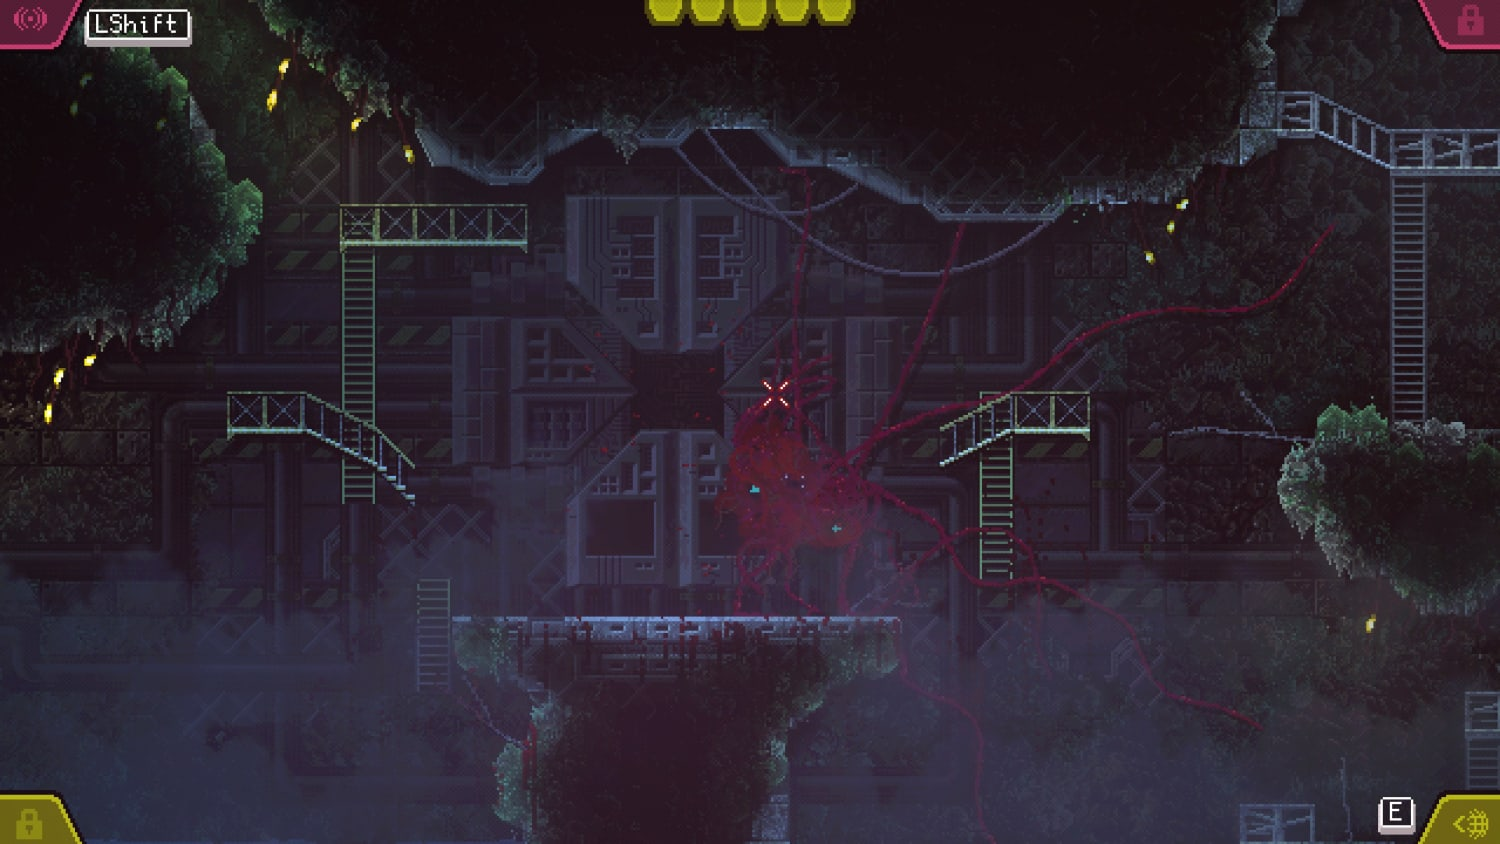 Carrion 5 Tips For This Reverse Horror Game